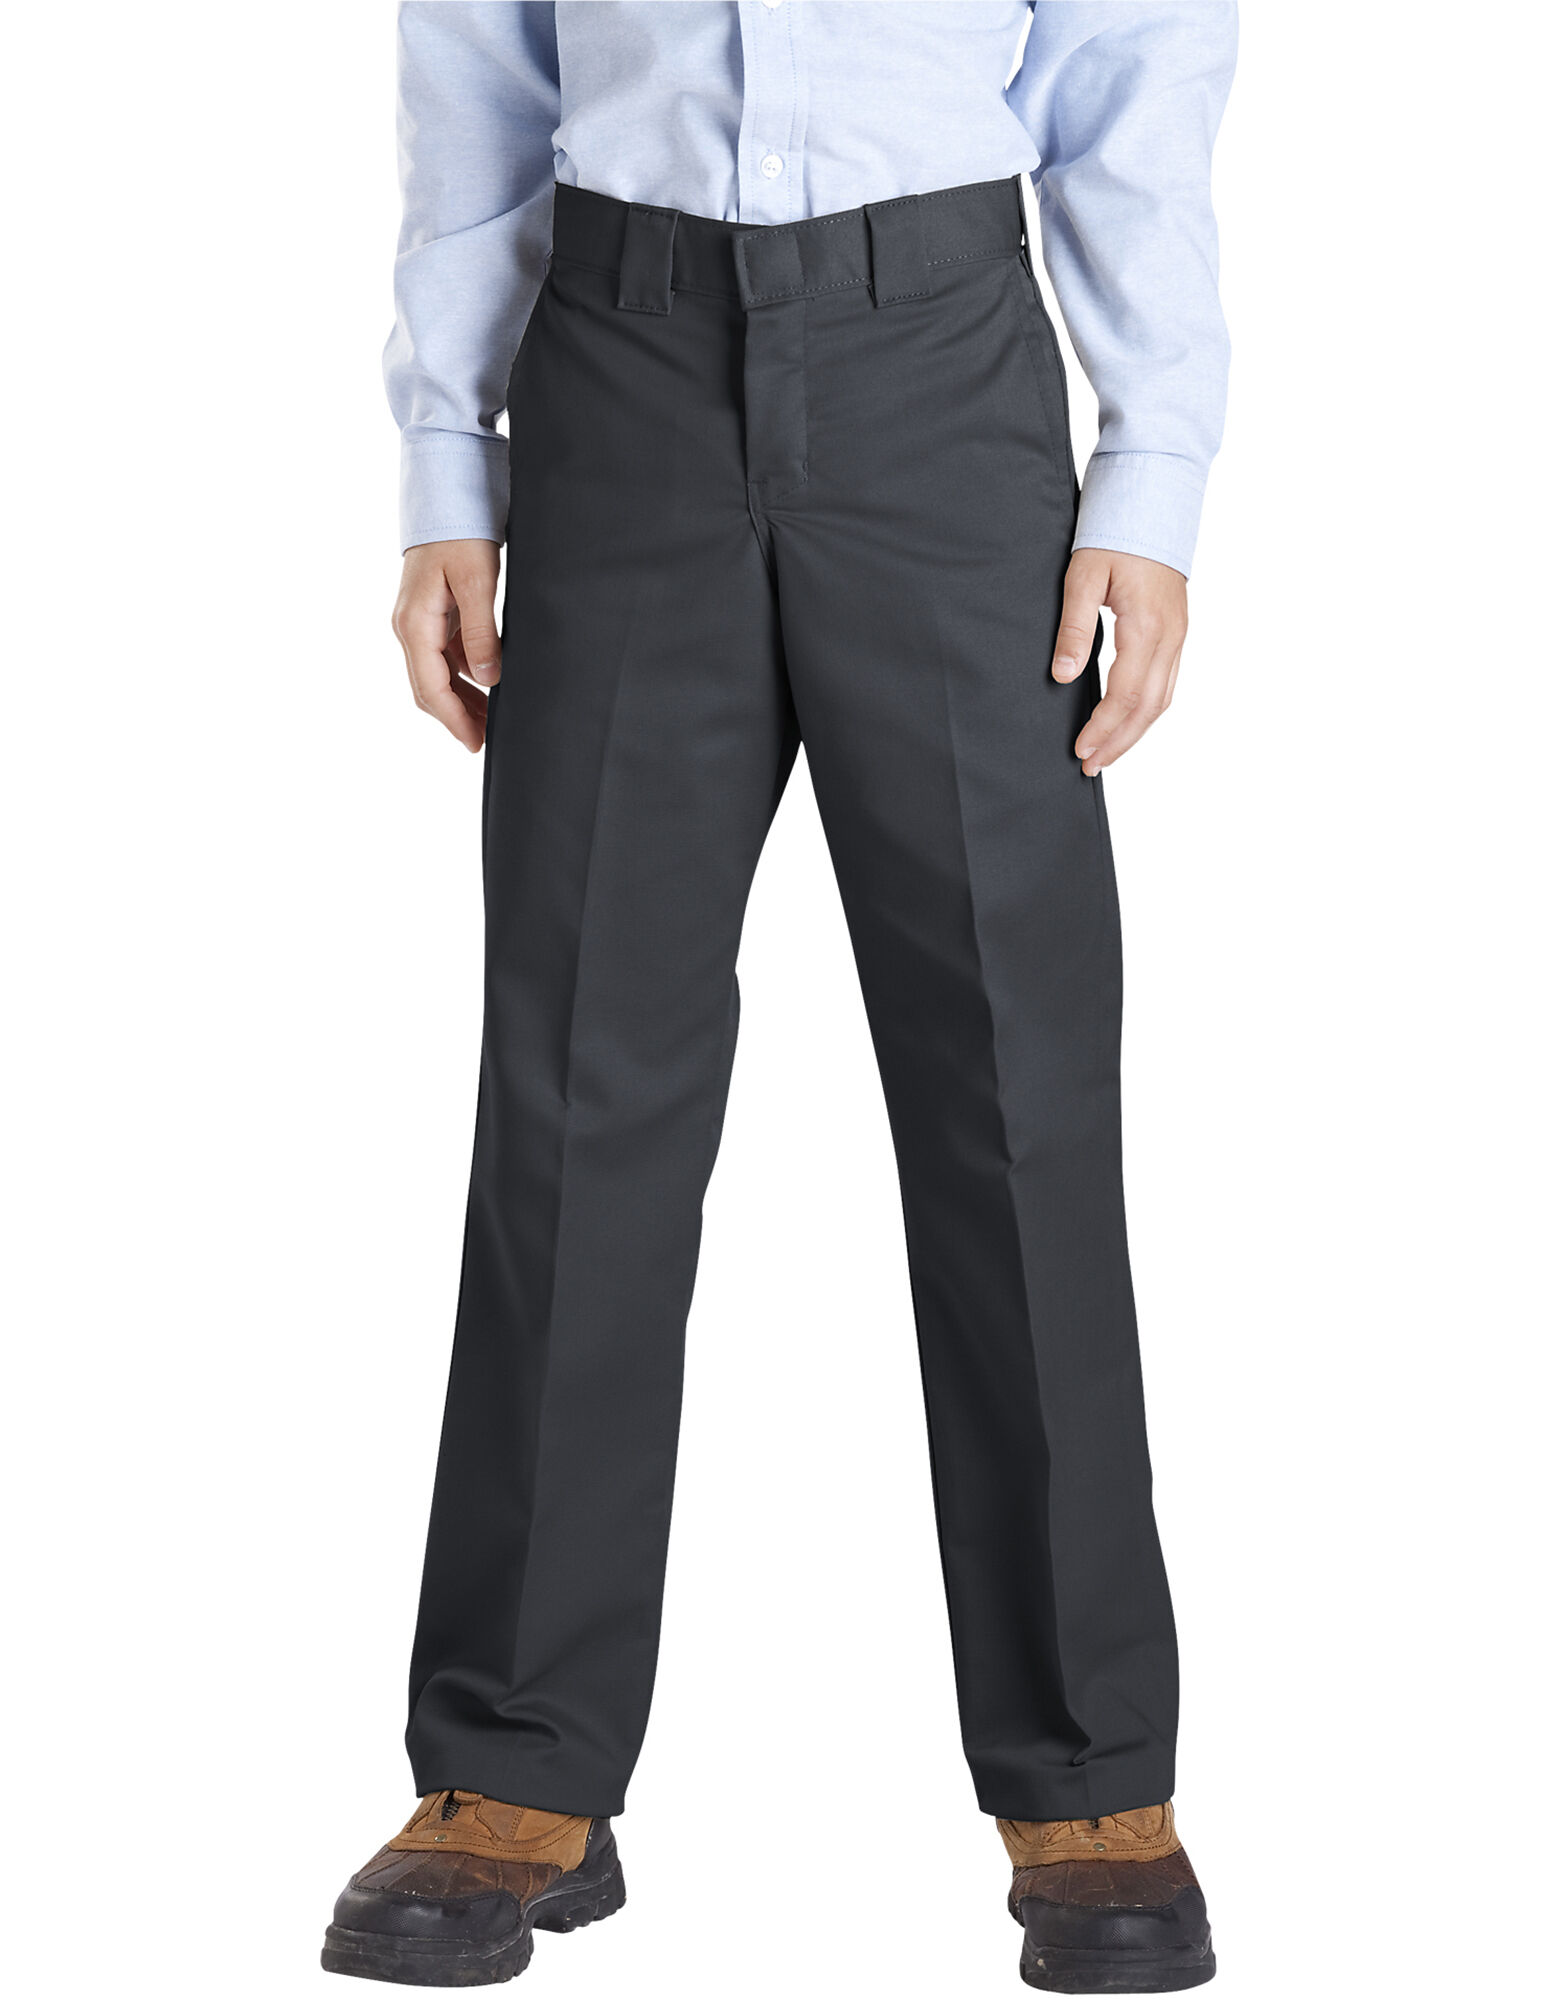 Shop autoebookj1.ga for Boys' Pants and, selection of Vintage Slim, Cargo, Stretch by Fit. Free Shipping on all orders!